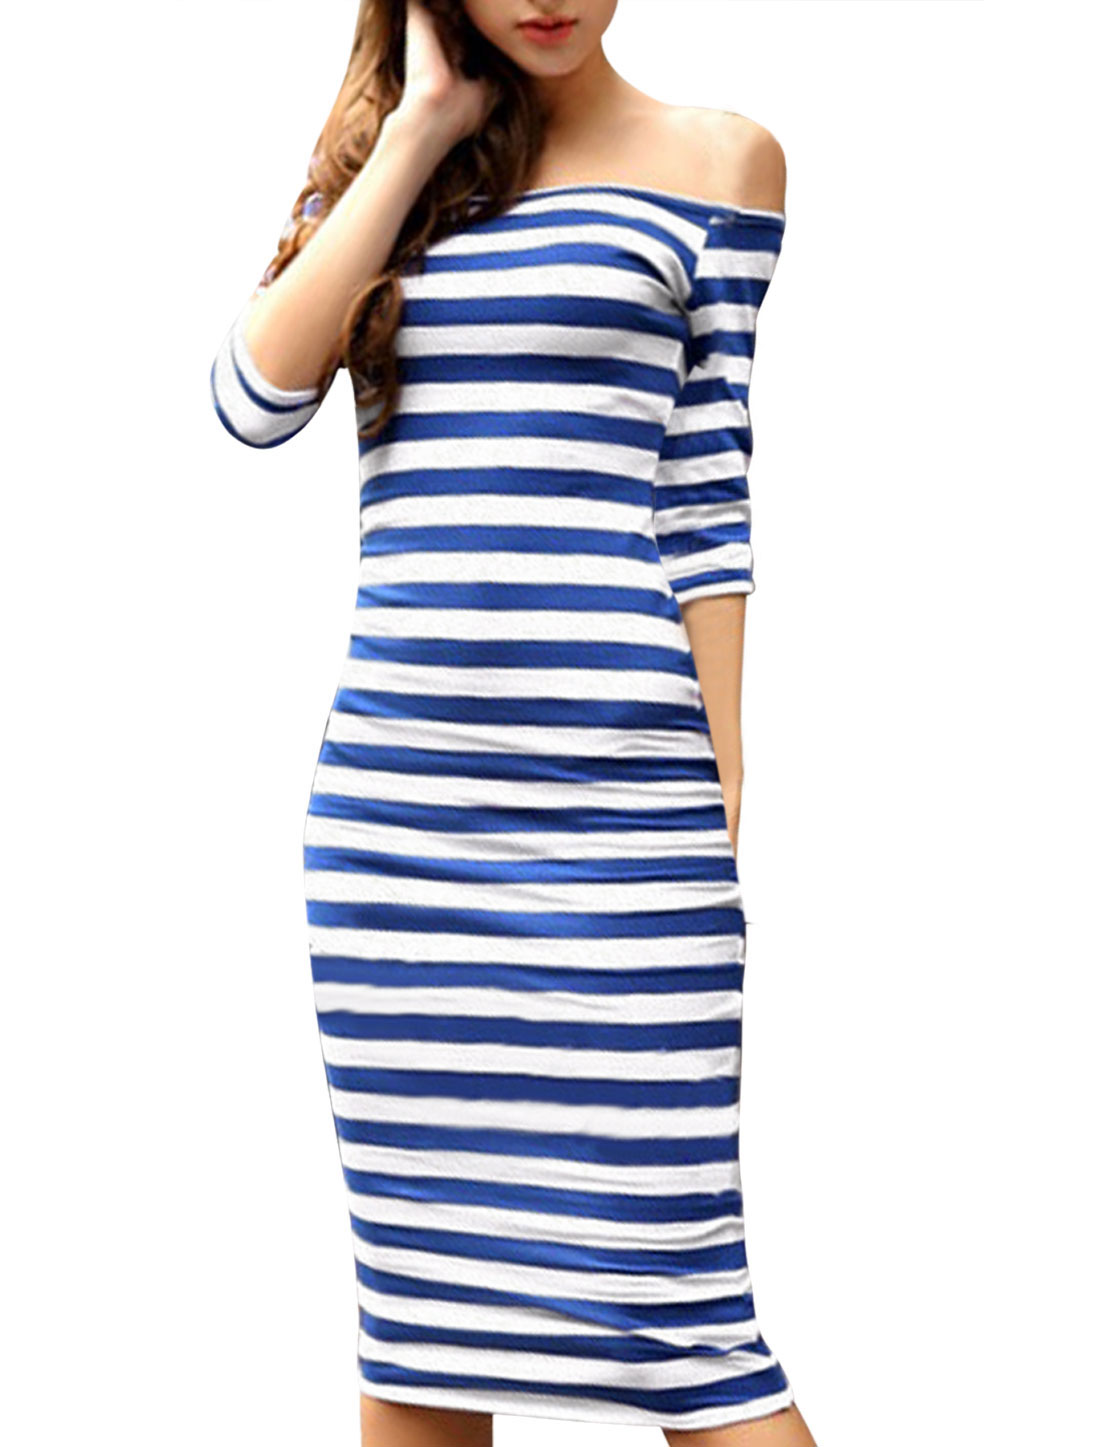 Lady Bar Striped Off Shoulder Slipover Bodycon Sheath Dress Dark Blue White XS